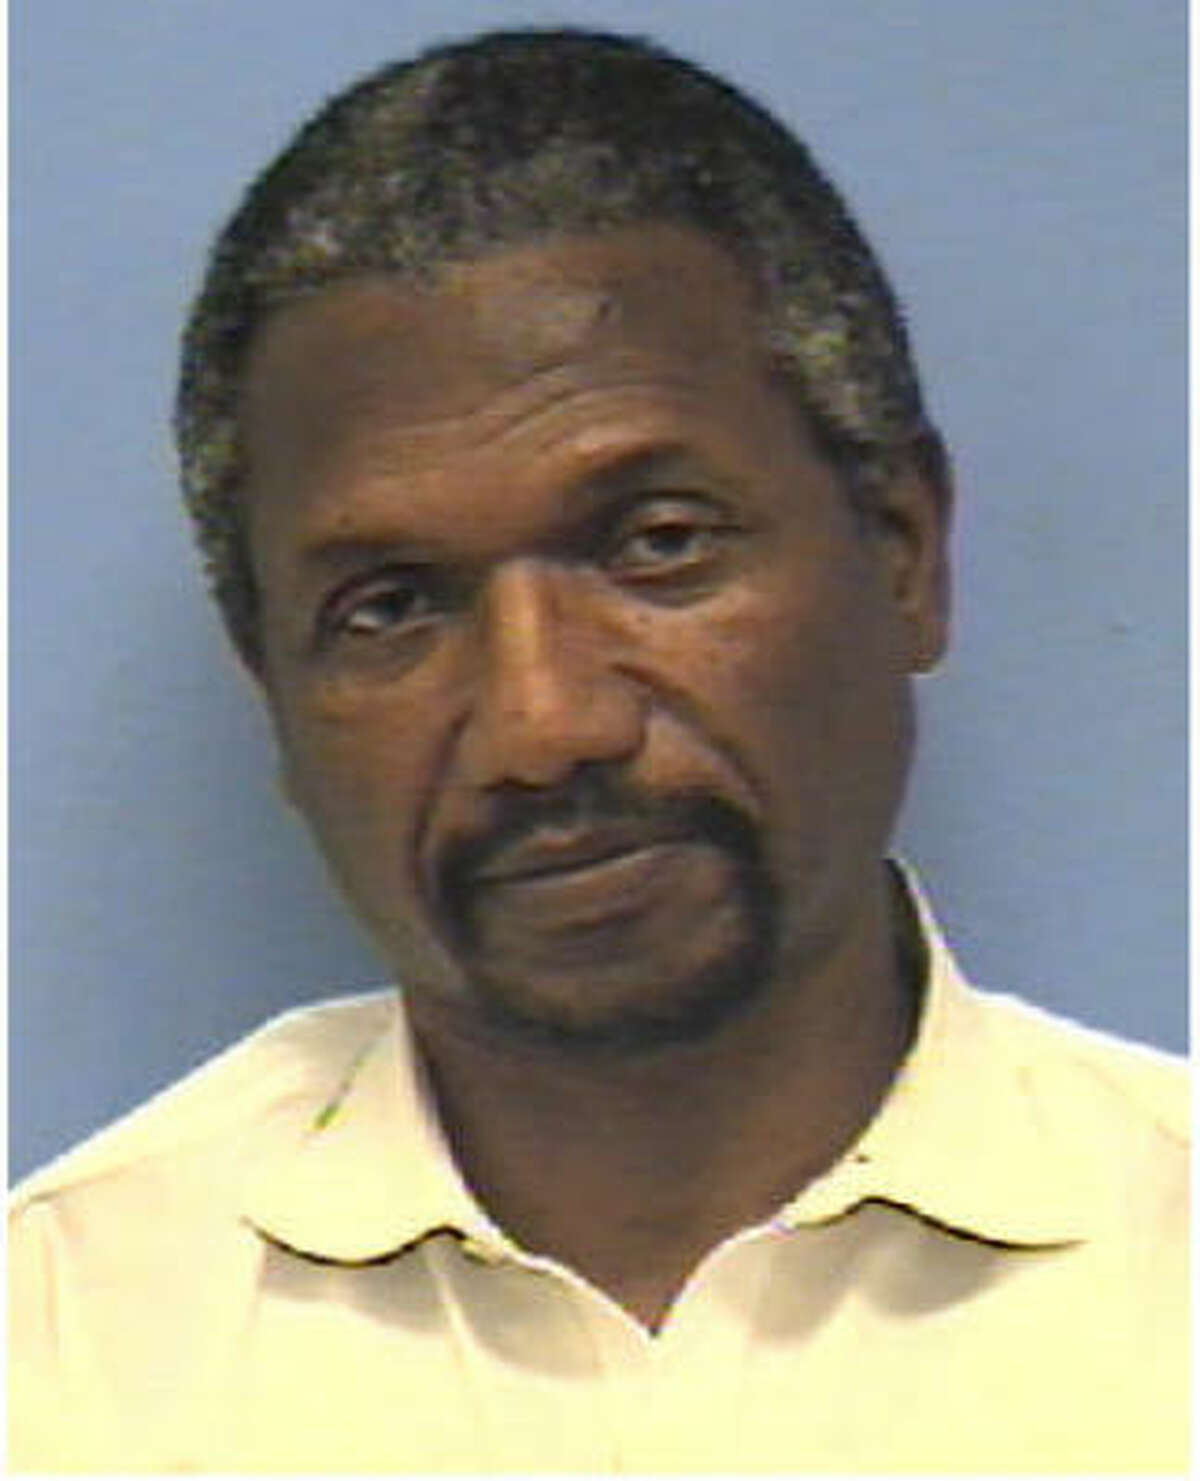 Rep. Harold Dutton, D-Houston, was charged in Austin for allegedly driving while intoxicated. Dutton, one of the longest-serving lawmakers in the Texas House, was arrested Wednesday night after failing a field sobriety test.